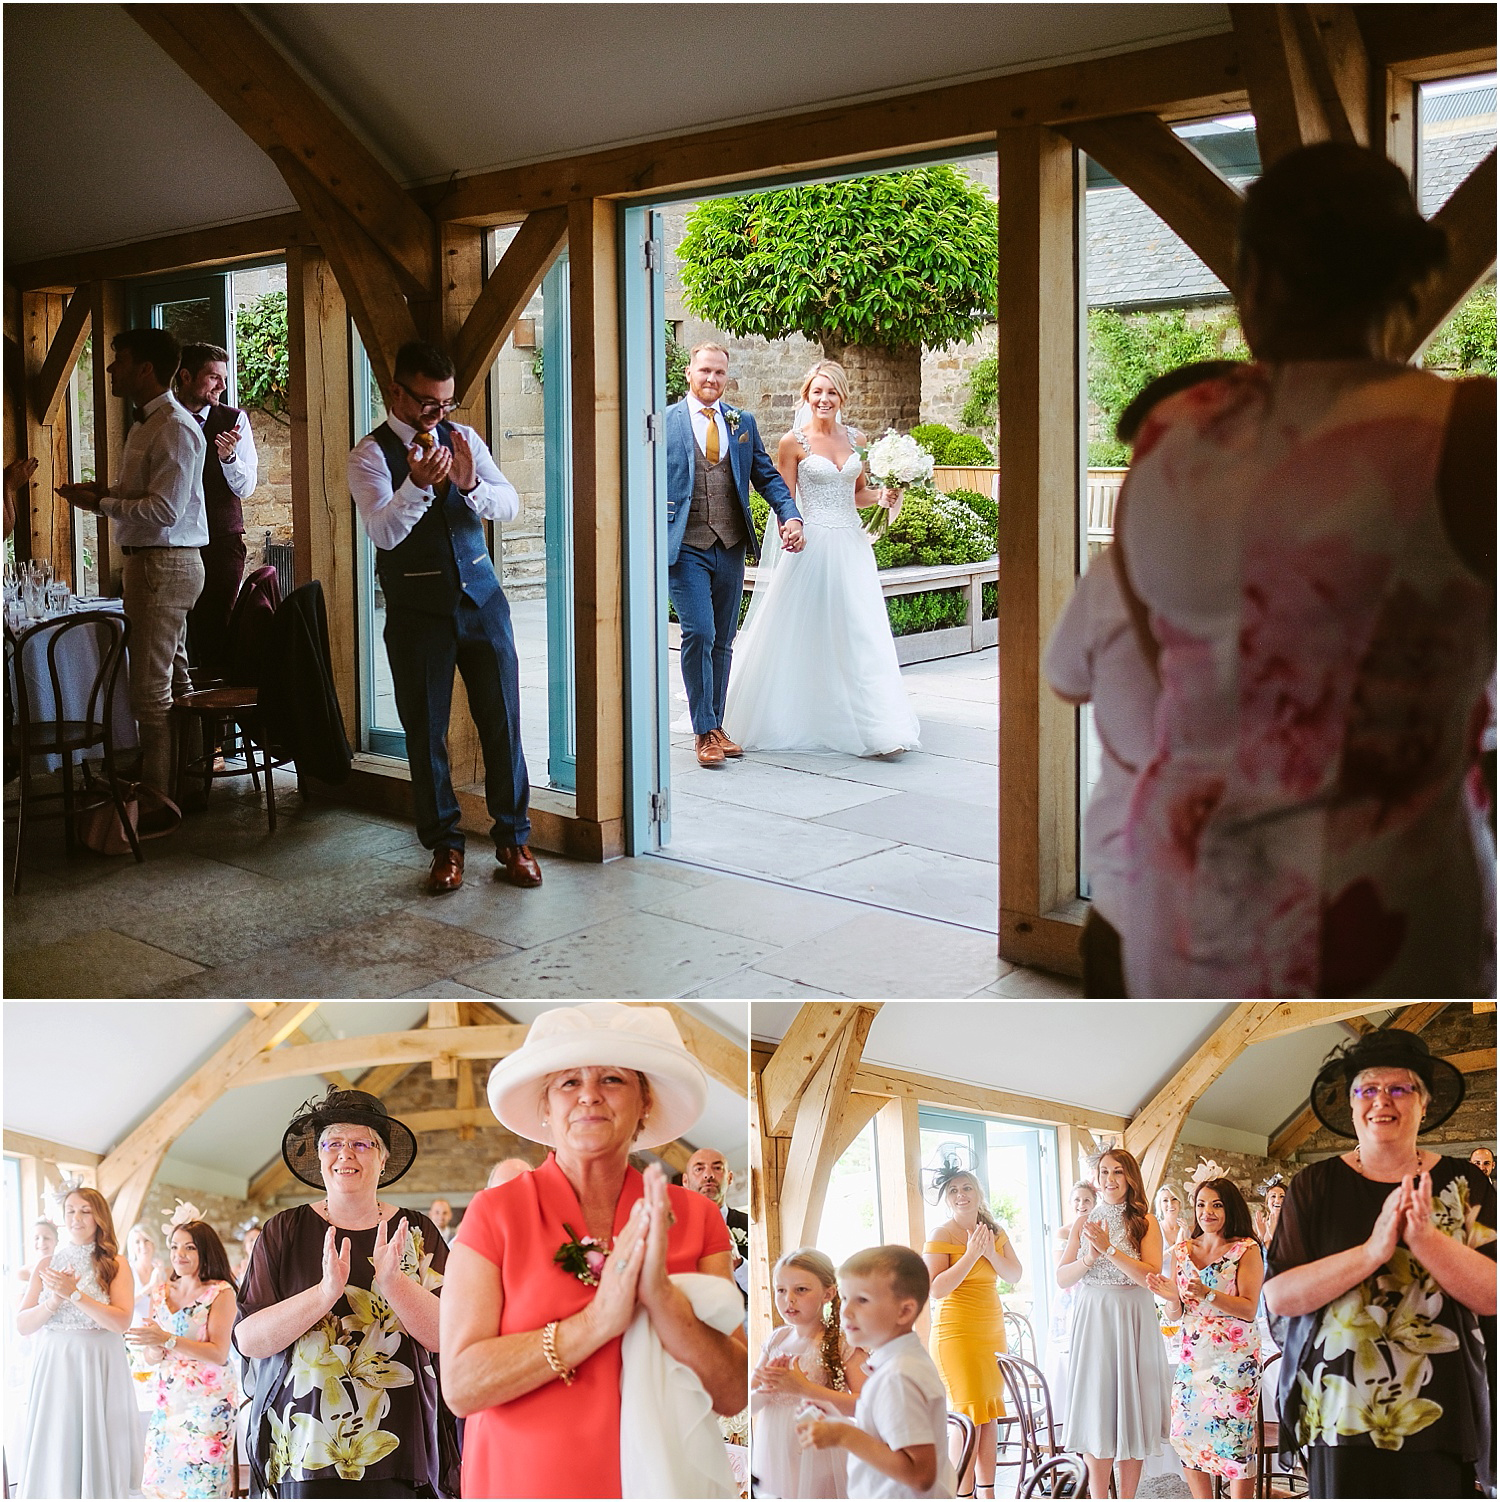 Wedding at Healey Barn - wedding photography by www.2tonephotography.co.uk 070.jpg